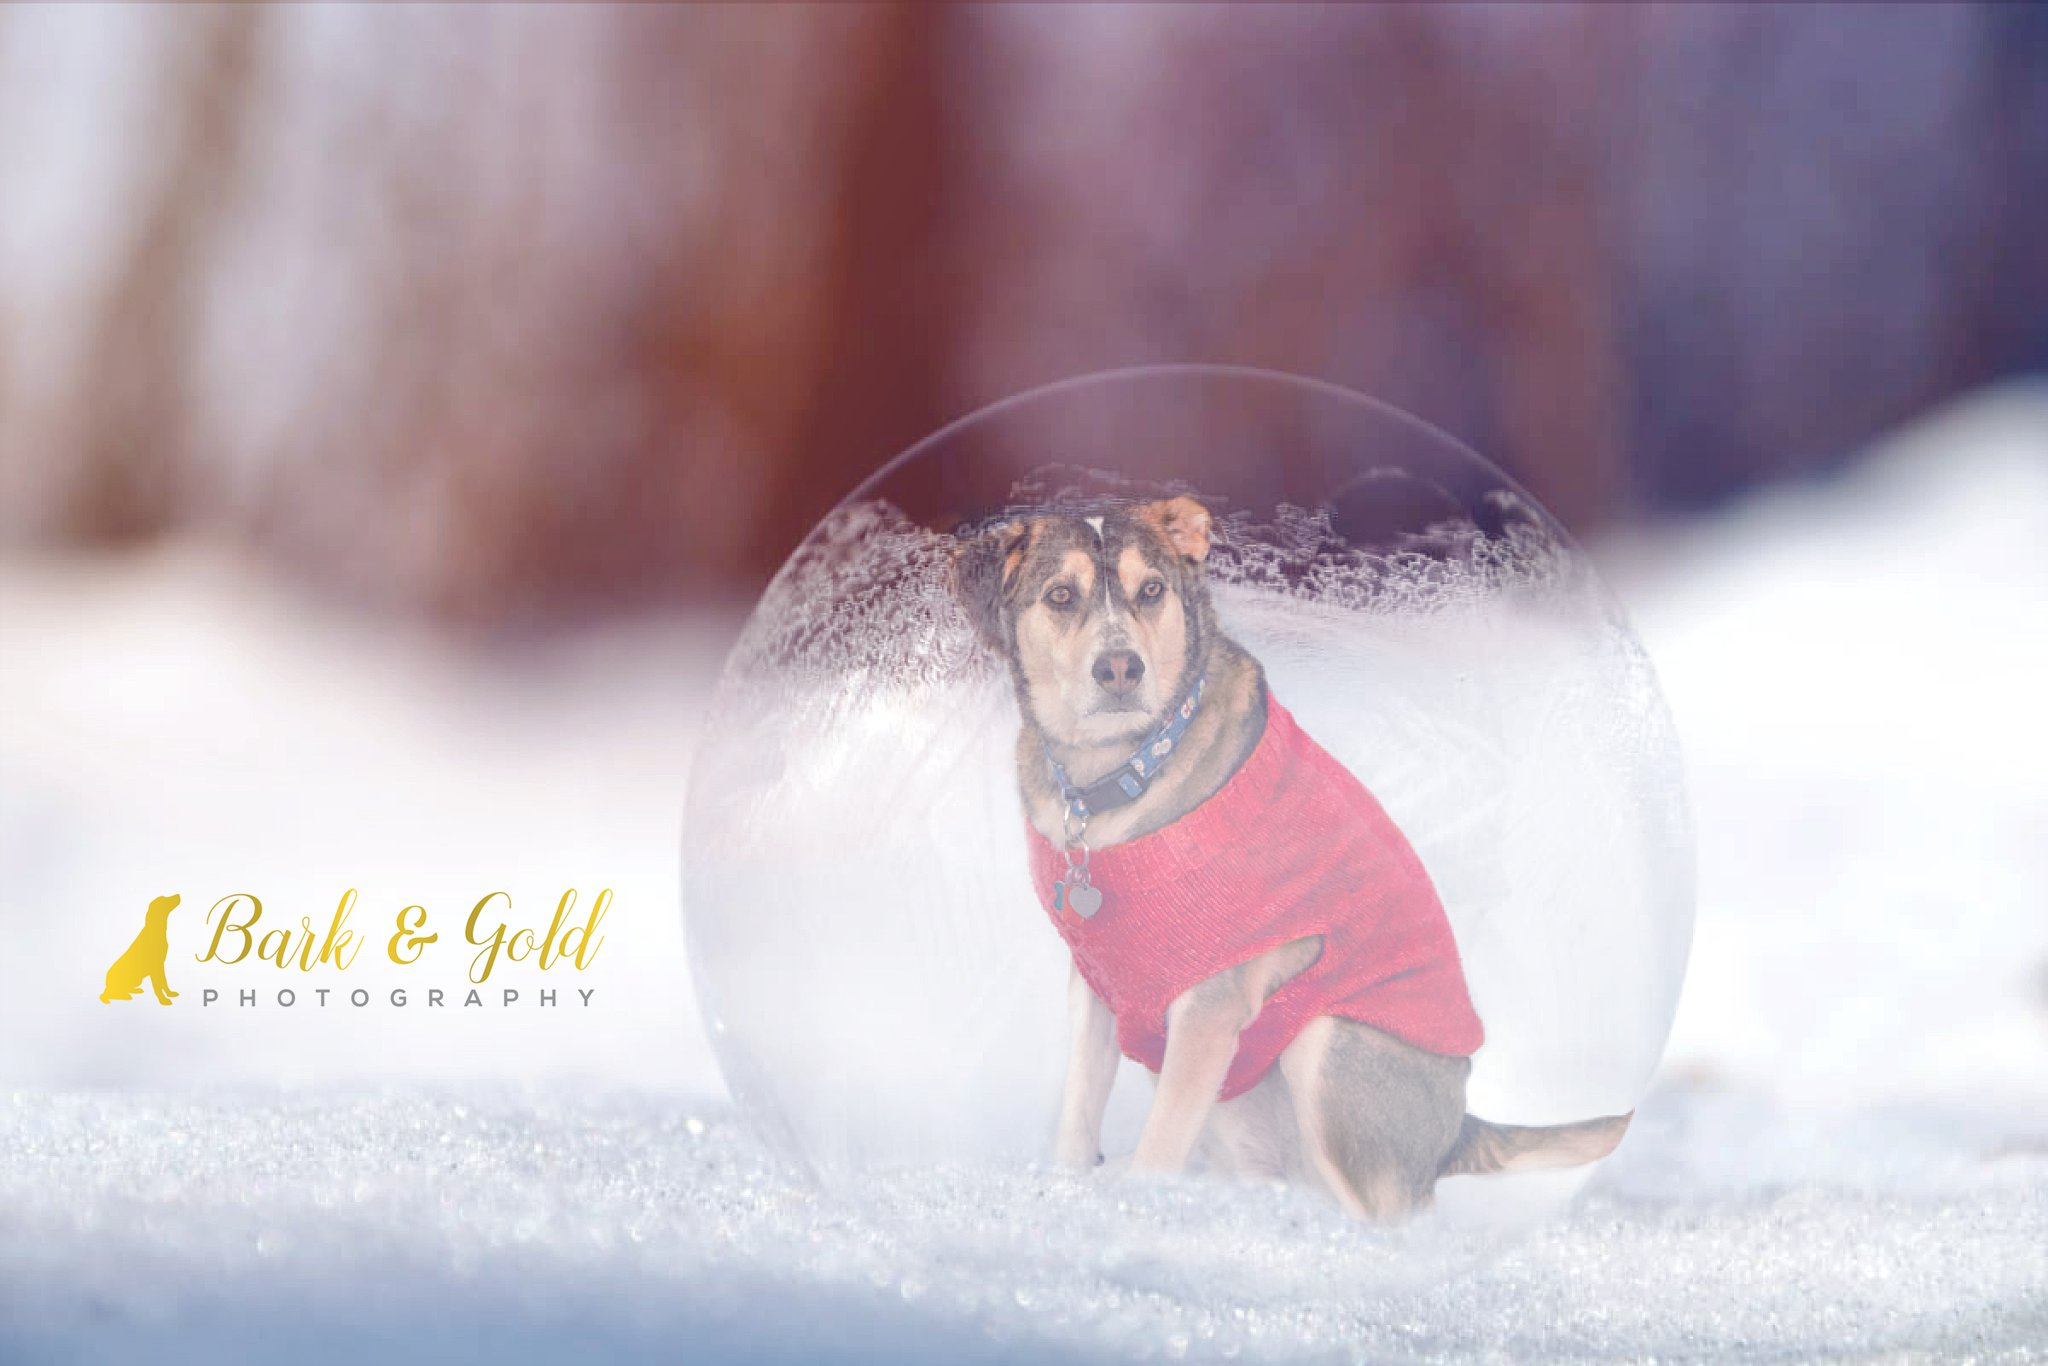 Siberian retriever in ice bubble for personal photography project